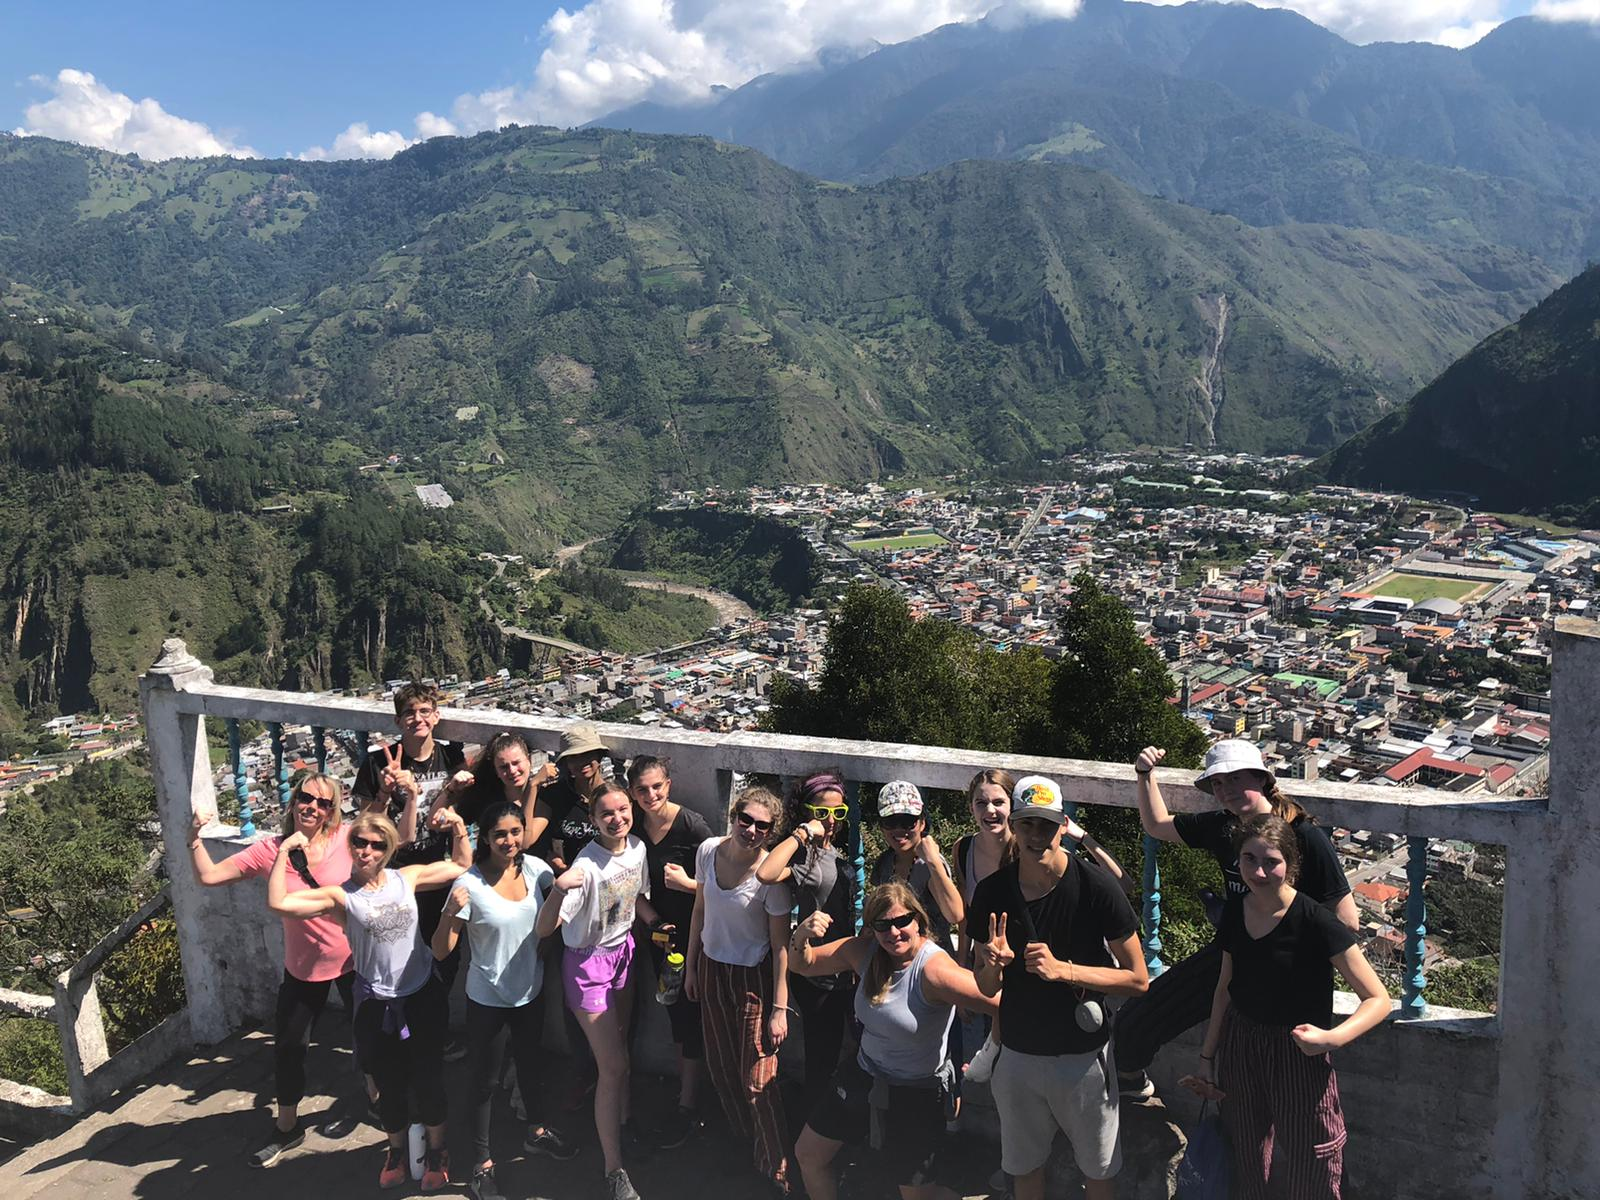 Students smiling at the camera from a viewpoint in Ecuador